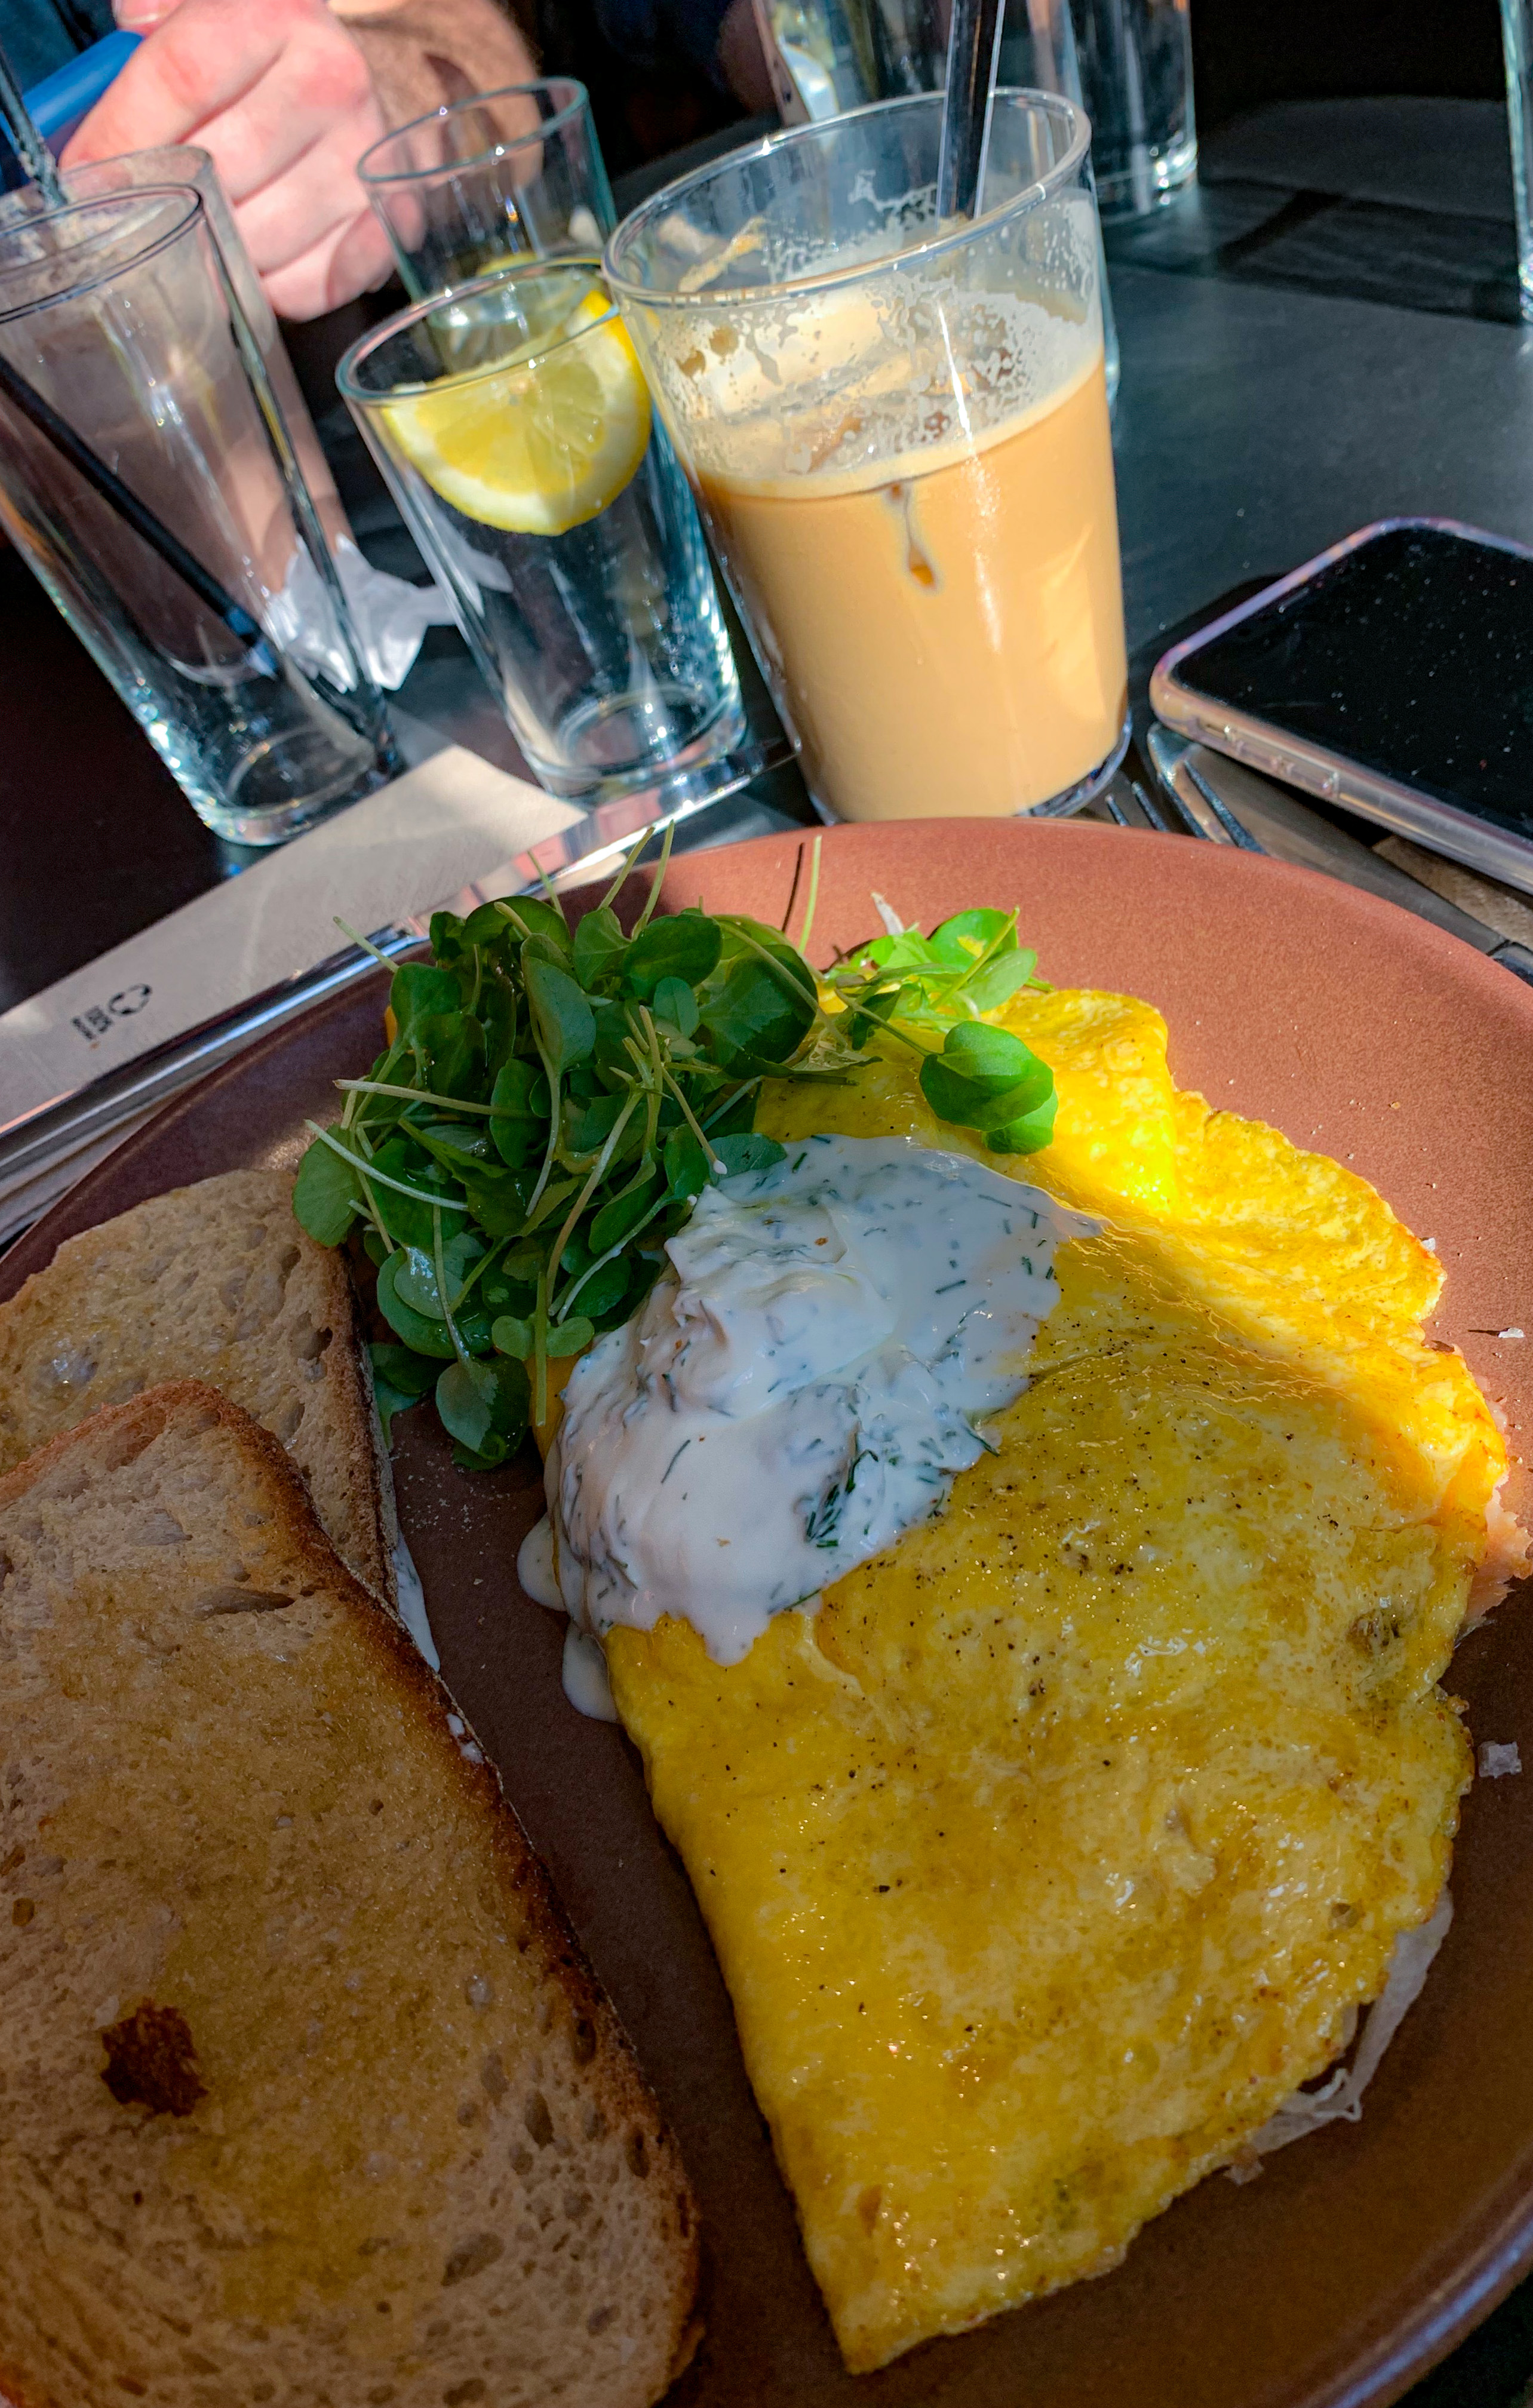 A clay colored plate with two slices of wheat toast on the left and on the right an omelette topped with a handful of greens and a dollop of sour cream. A glass of iced coffee and milk stands behind it.